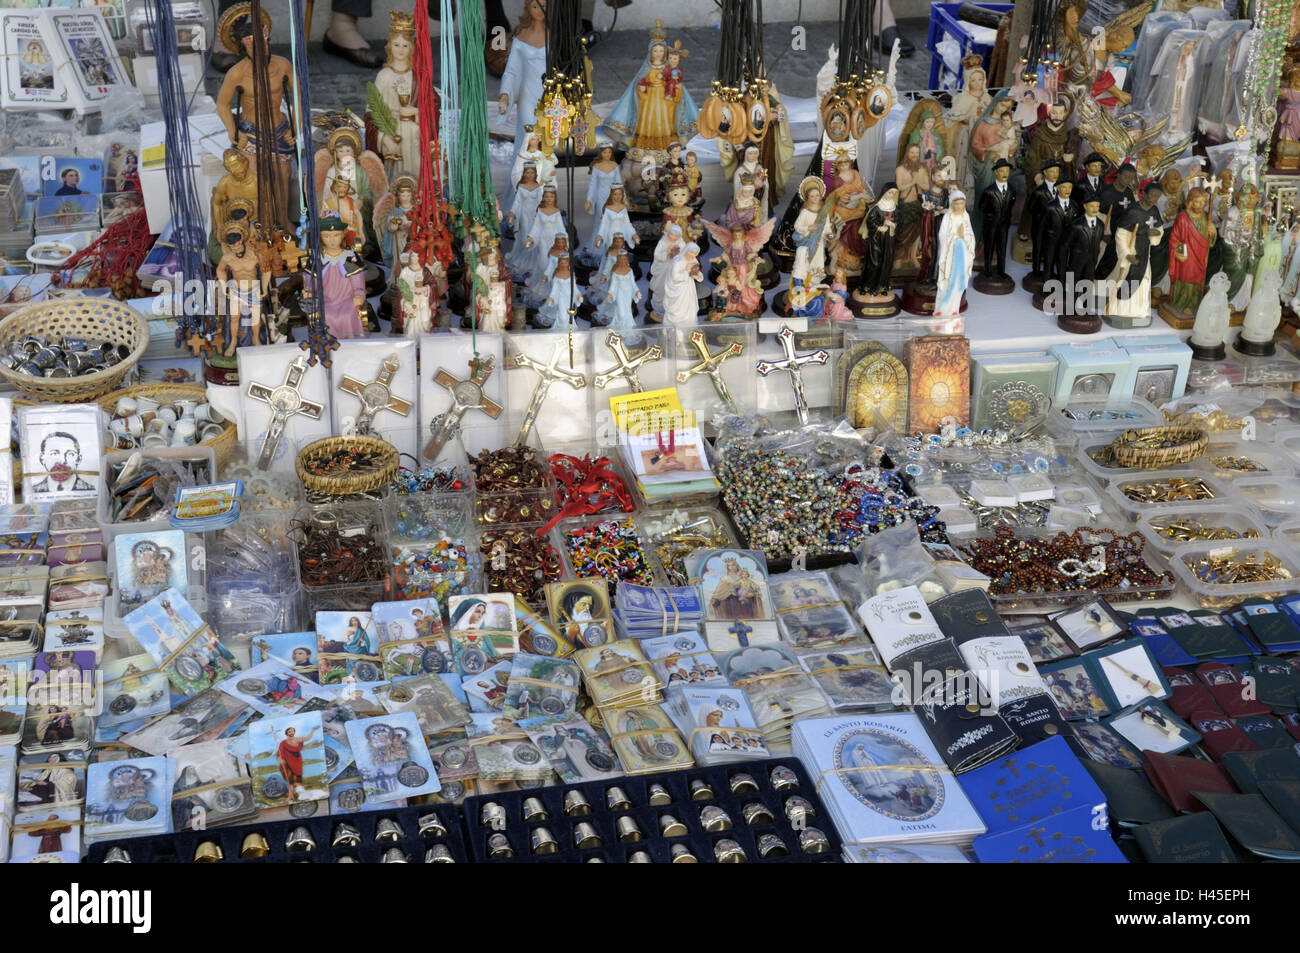 Spain, Canary islands, island grain Canaria, Teror, pawn market, market stall, sales, devotional objects, - Stock Image